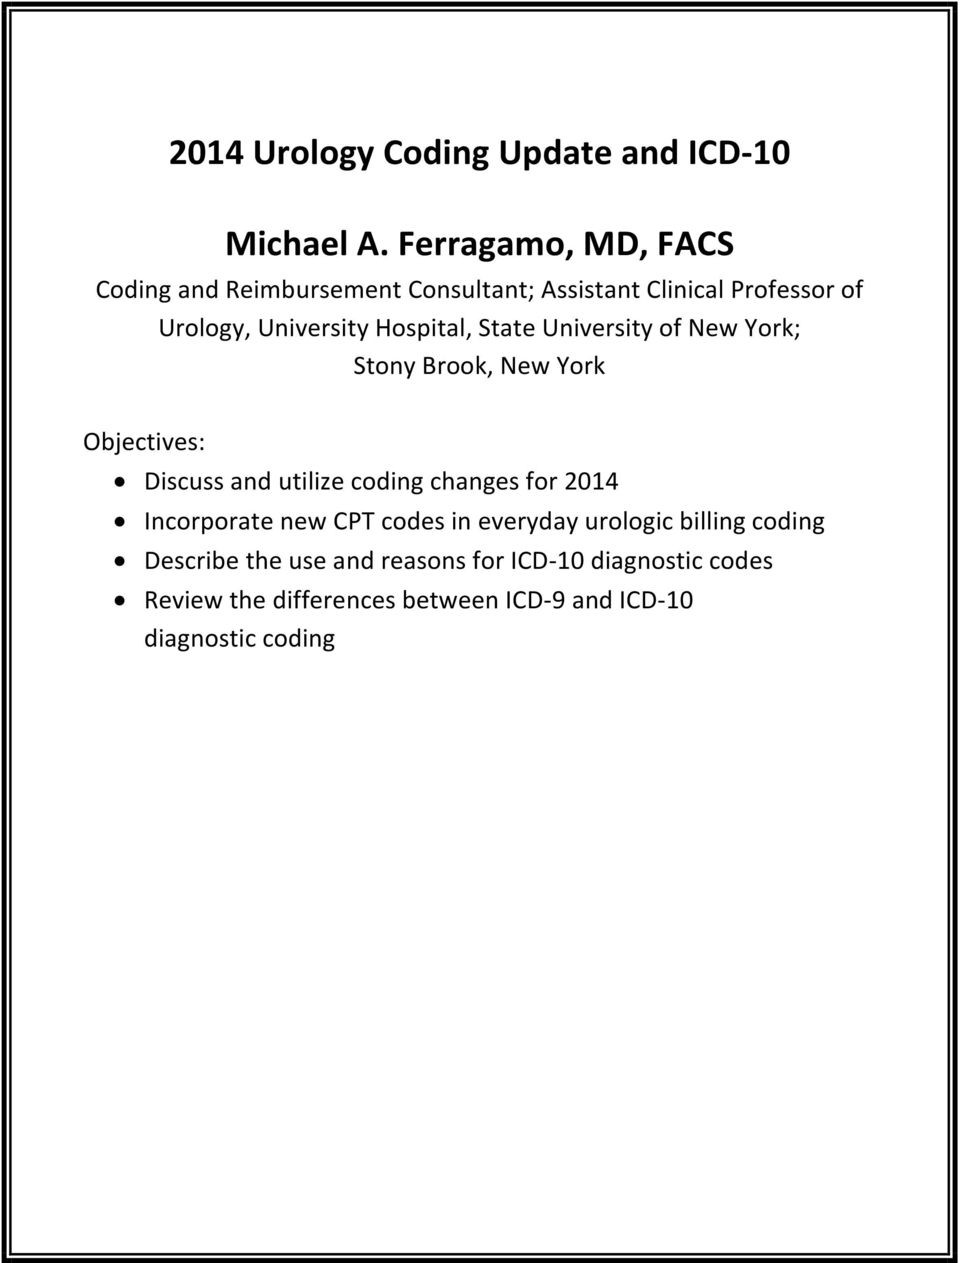 2014 urology coding update and icd